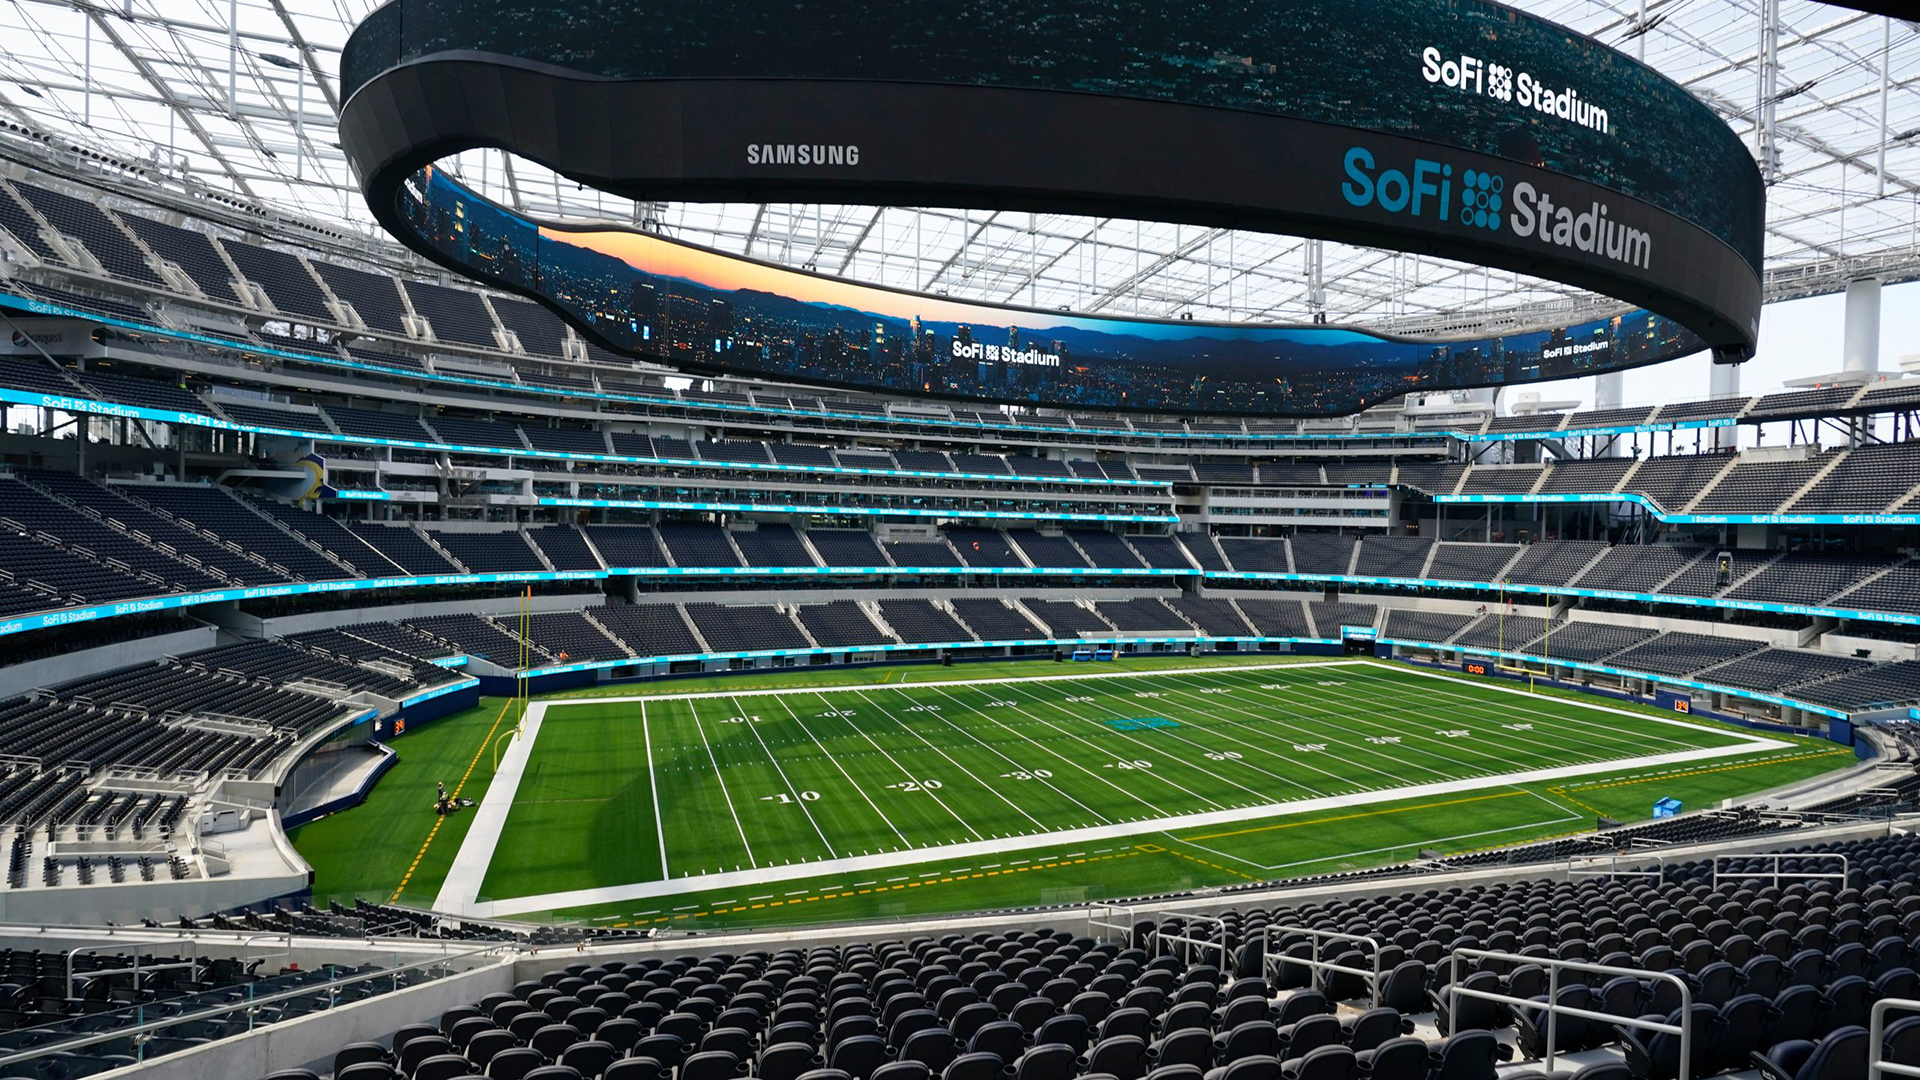 SoFi Stadium. Virtual background to use on Zoom, Microsoft Teams, Skype, Google Meet, WebEx or any other compatible app.